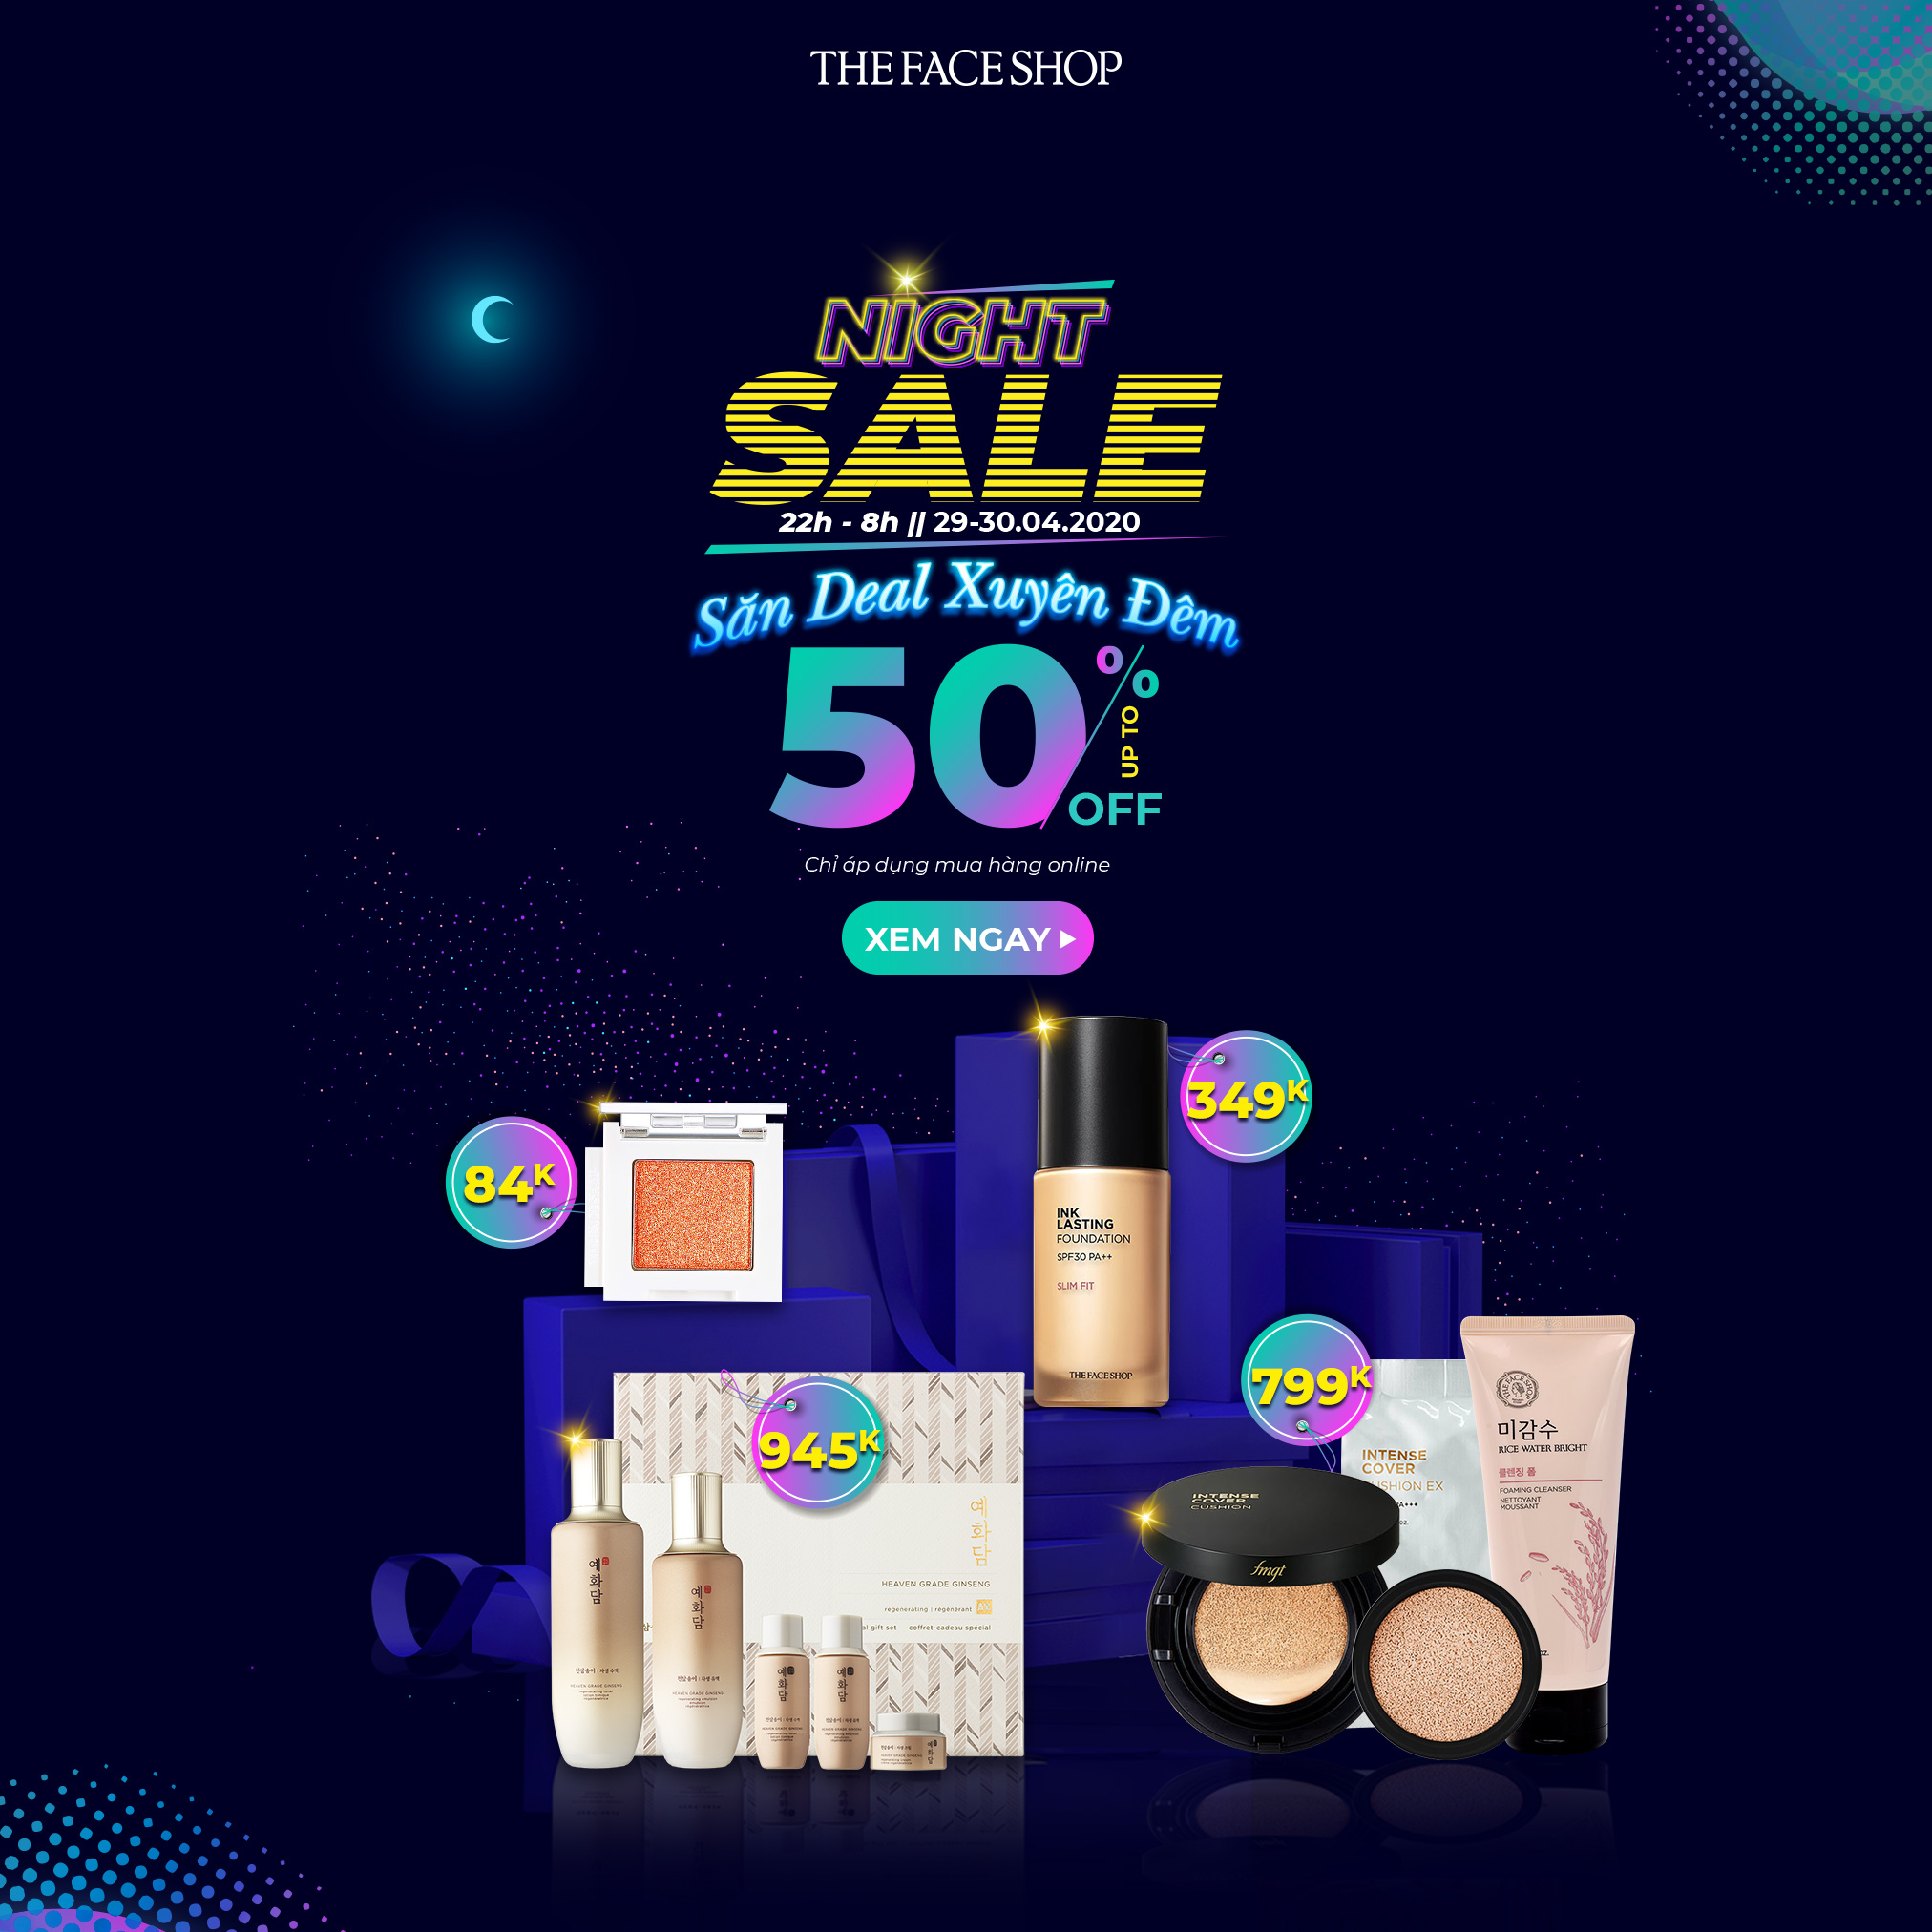 [THE FACESHOP] - NIGHT SALE 22h - 08h 29-30.04